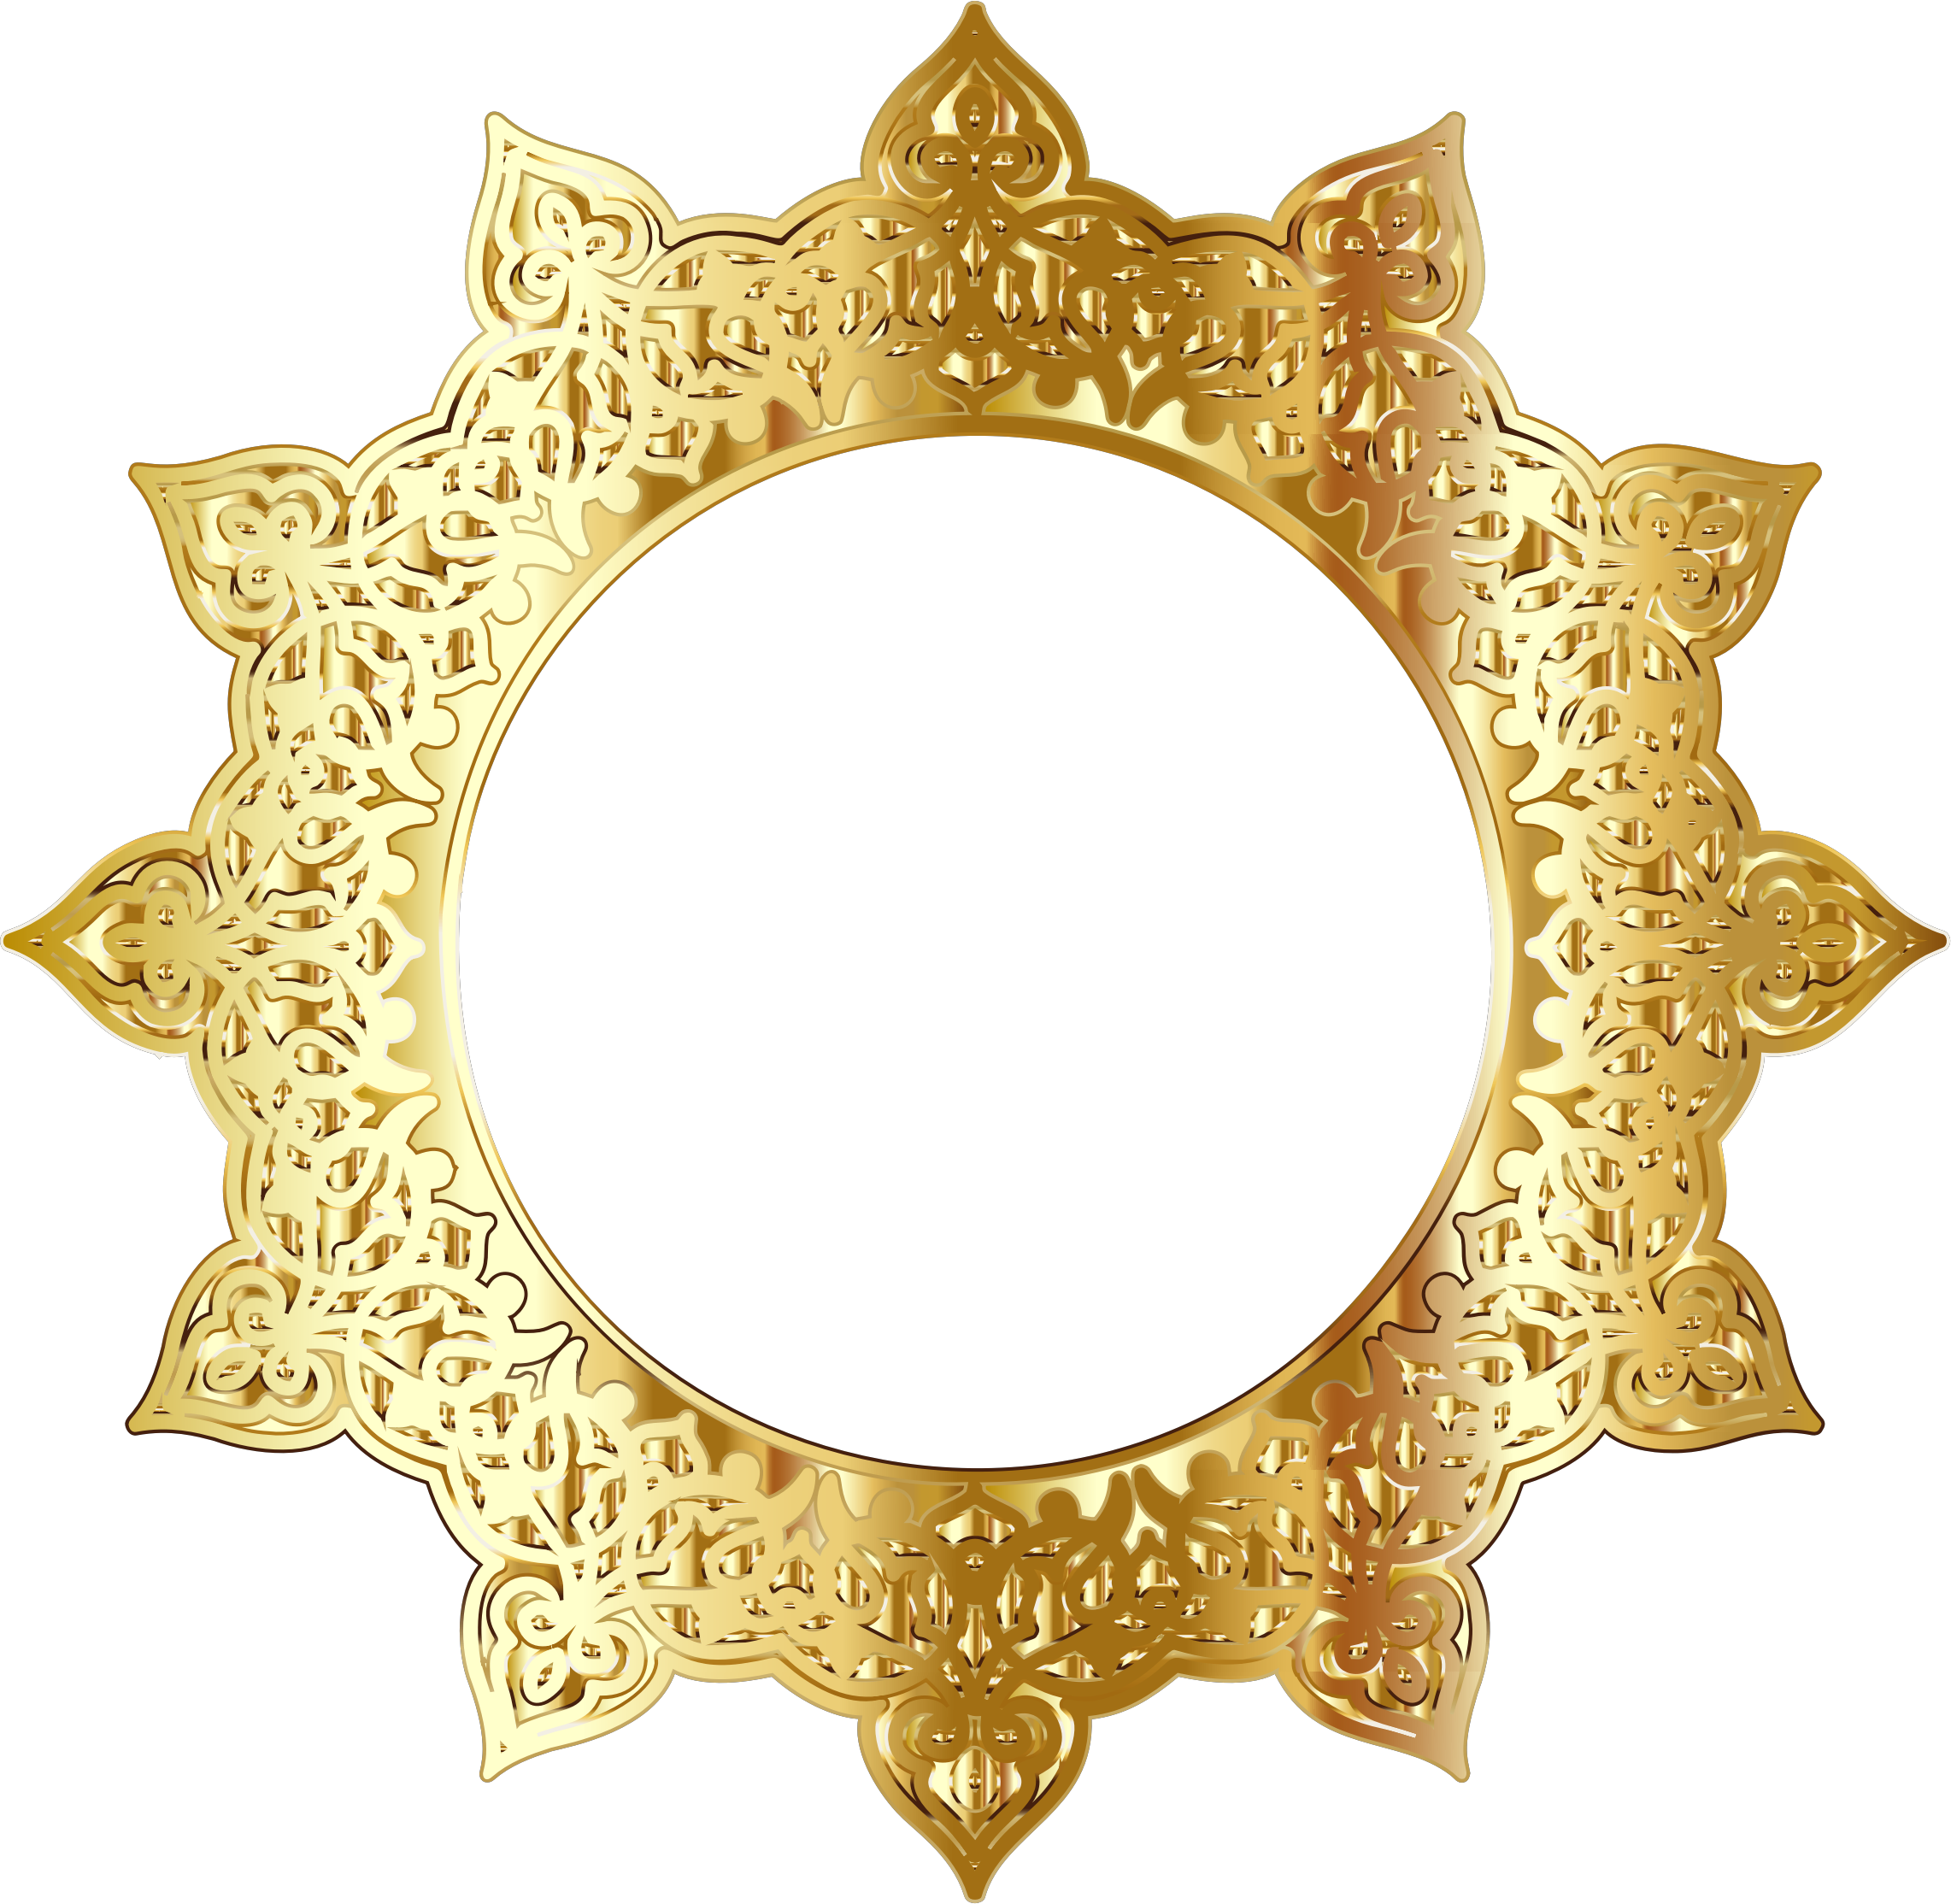 Gold Decorative Ornamental Round Frame by GDJ